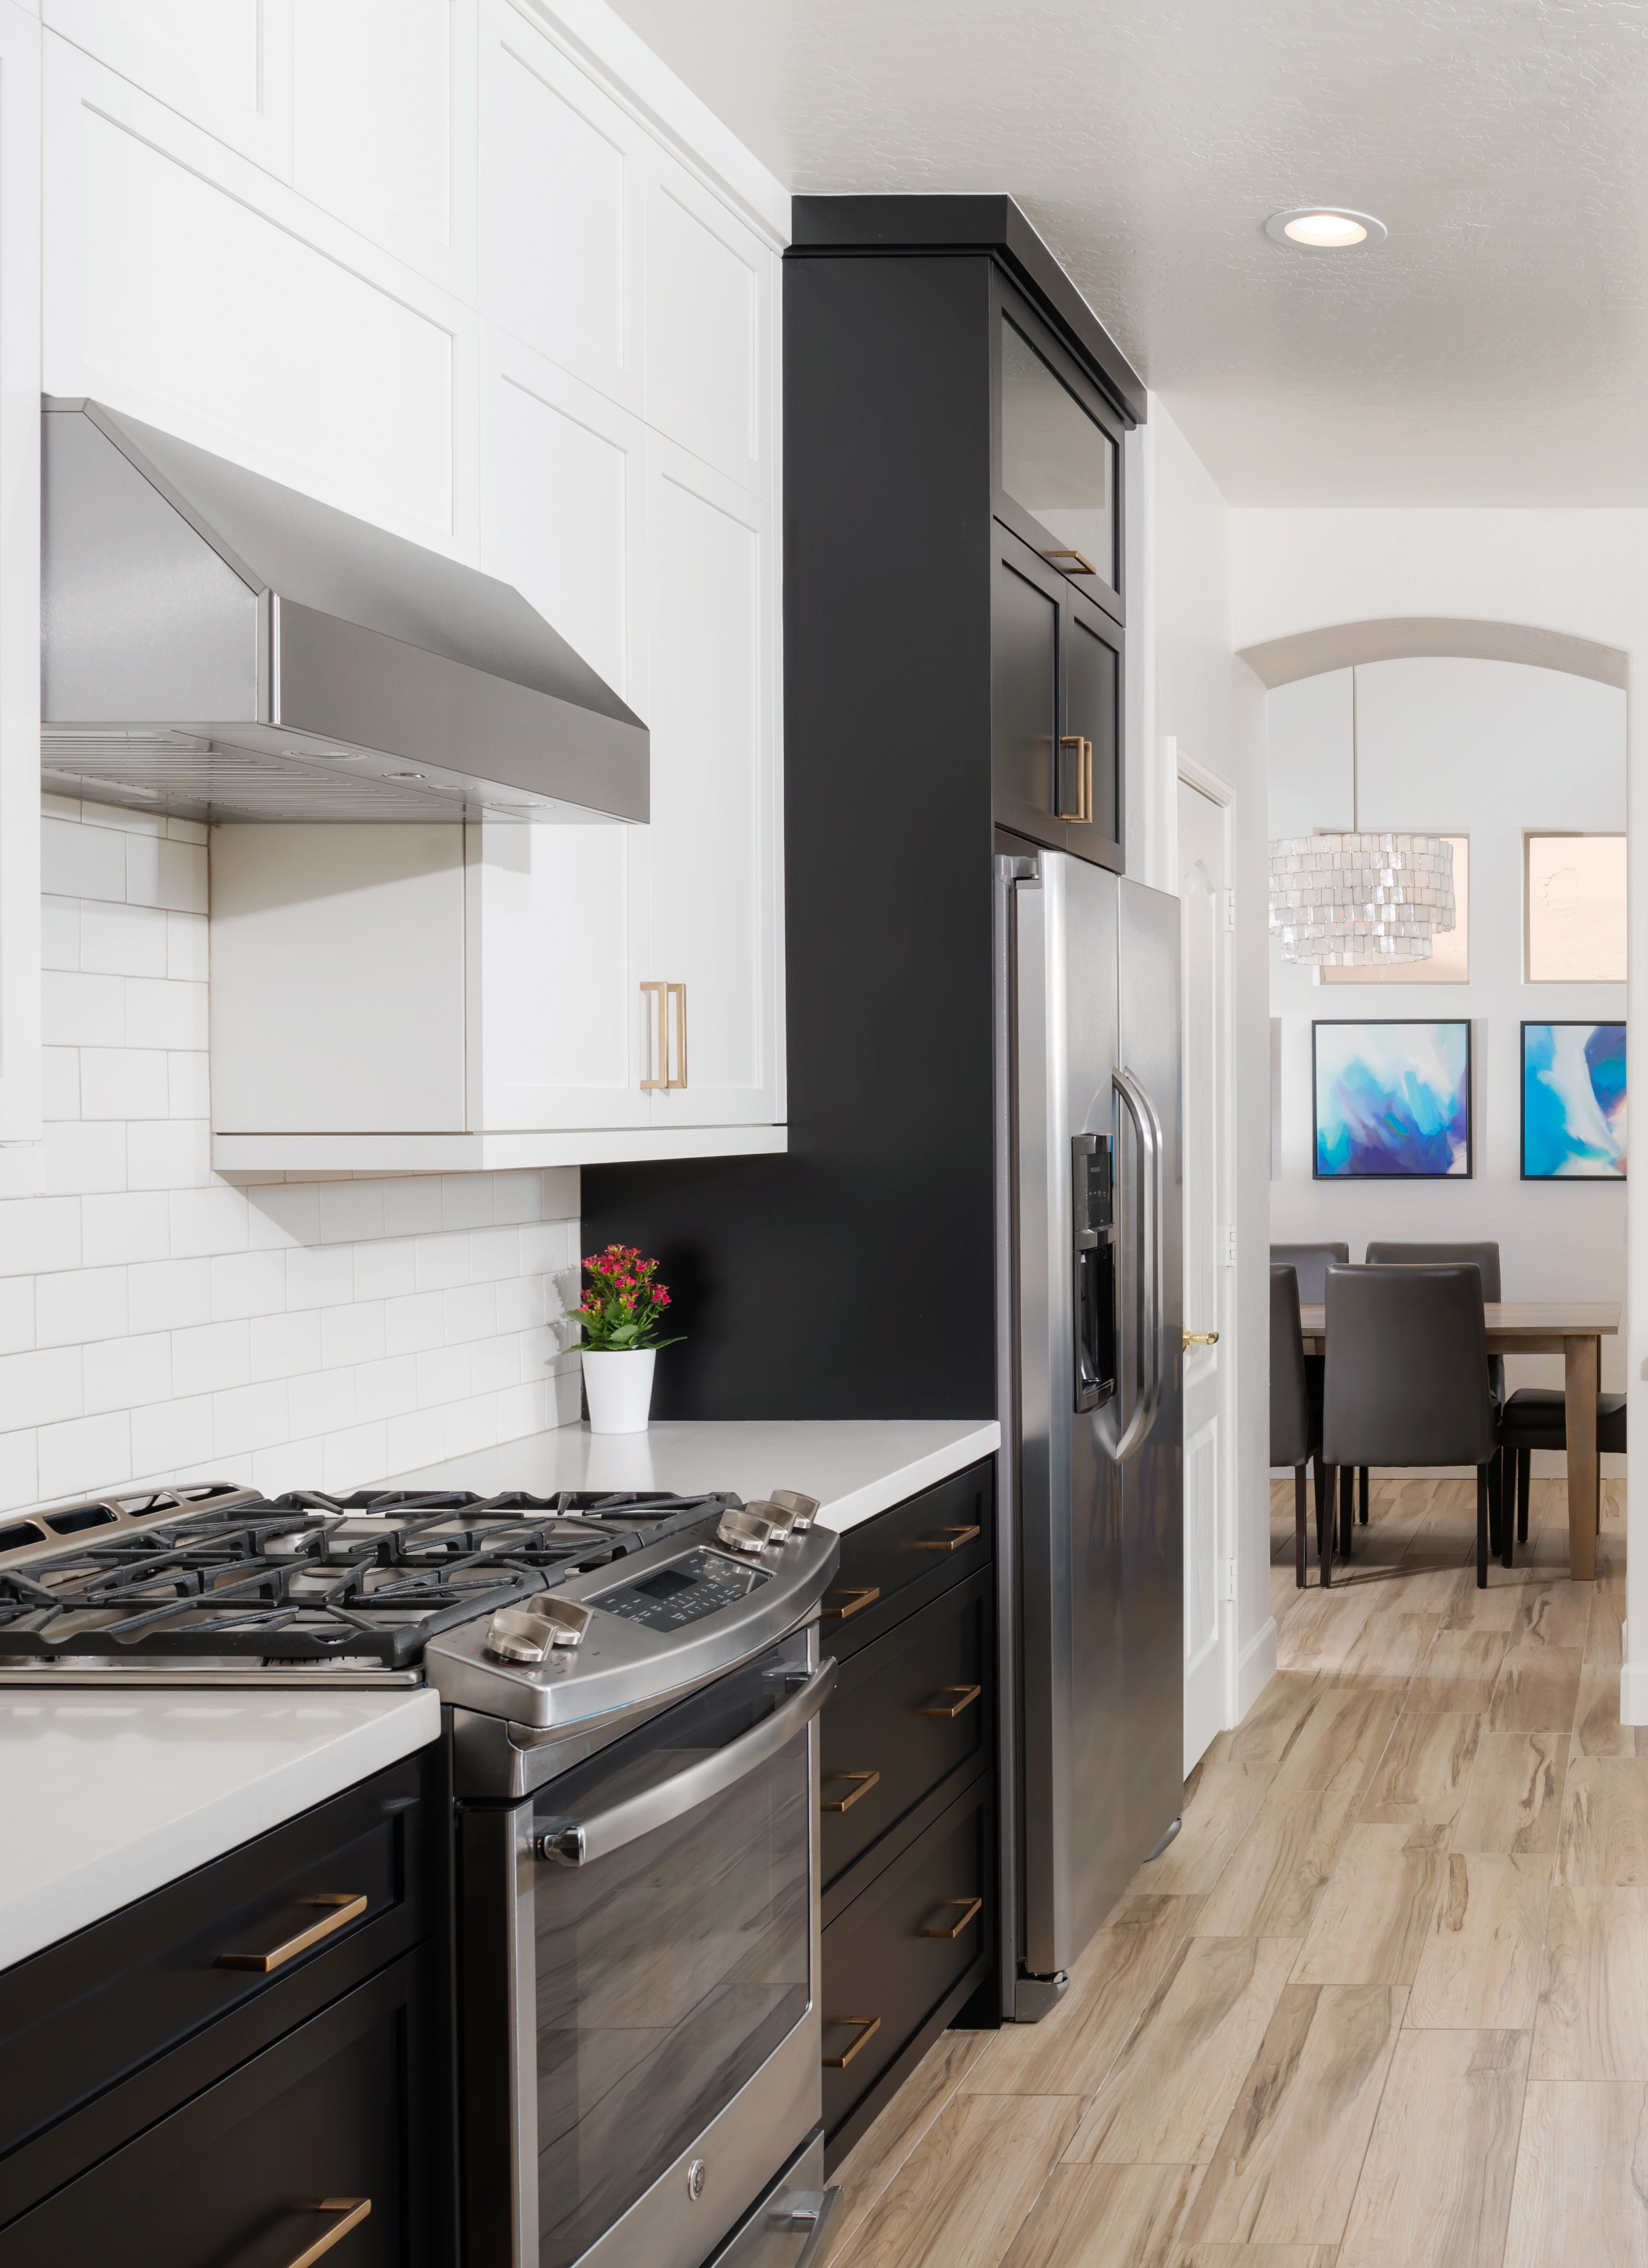 black and white kitchen with gold decorative hardware cabinetsolutionsusa weenrichhomelife on kitchen remodel gold hardware id=58588